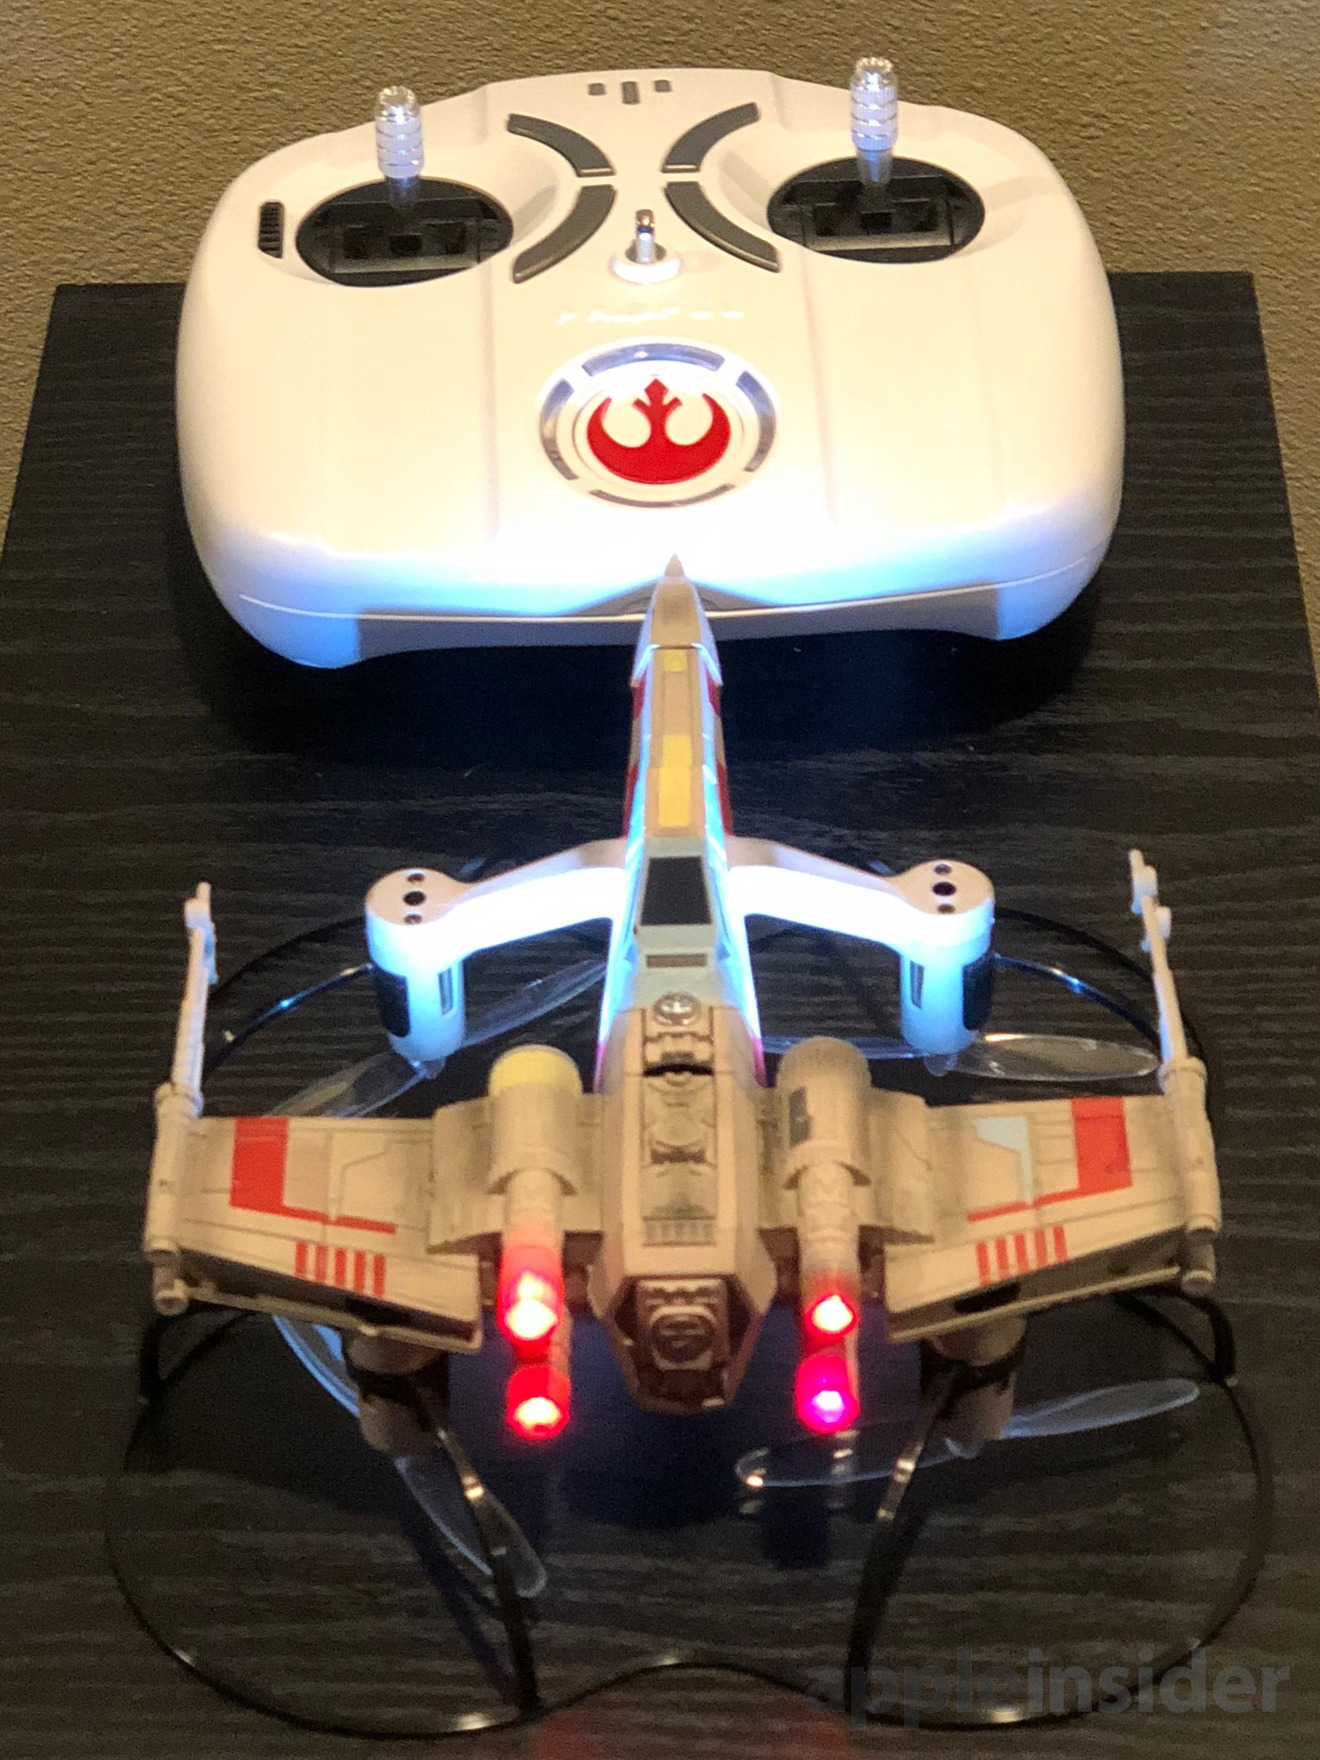 Propel's XT-65 X-Wing Starfighter with controller